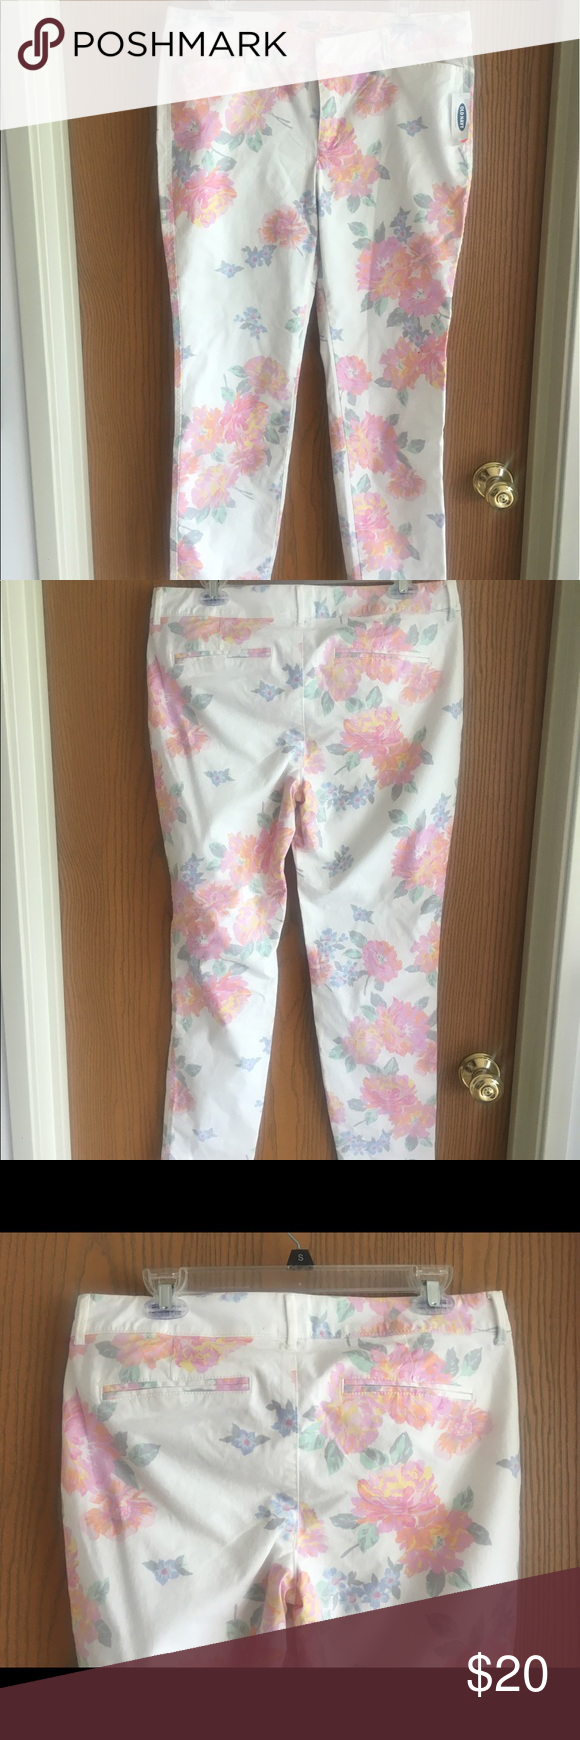 Old Navy 'Pixie' floral print chinos Brand new with tags! Size 8 regular. Please message me for more pictures or with any questions! Old Navy Pants Ankle & Cropped